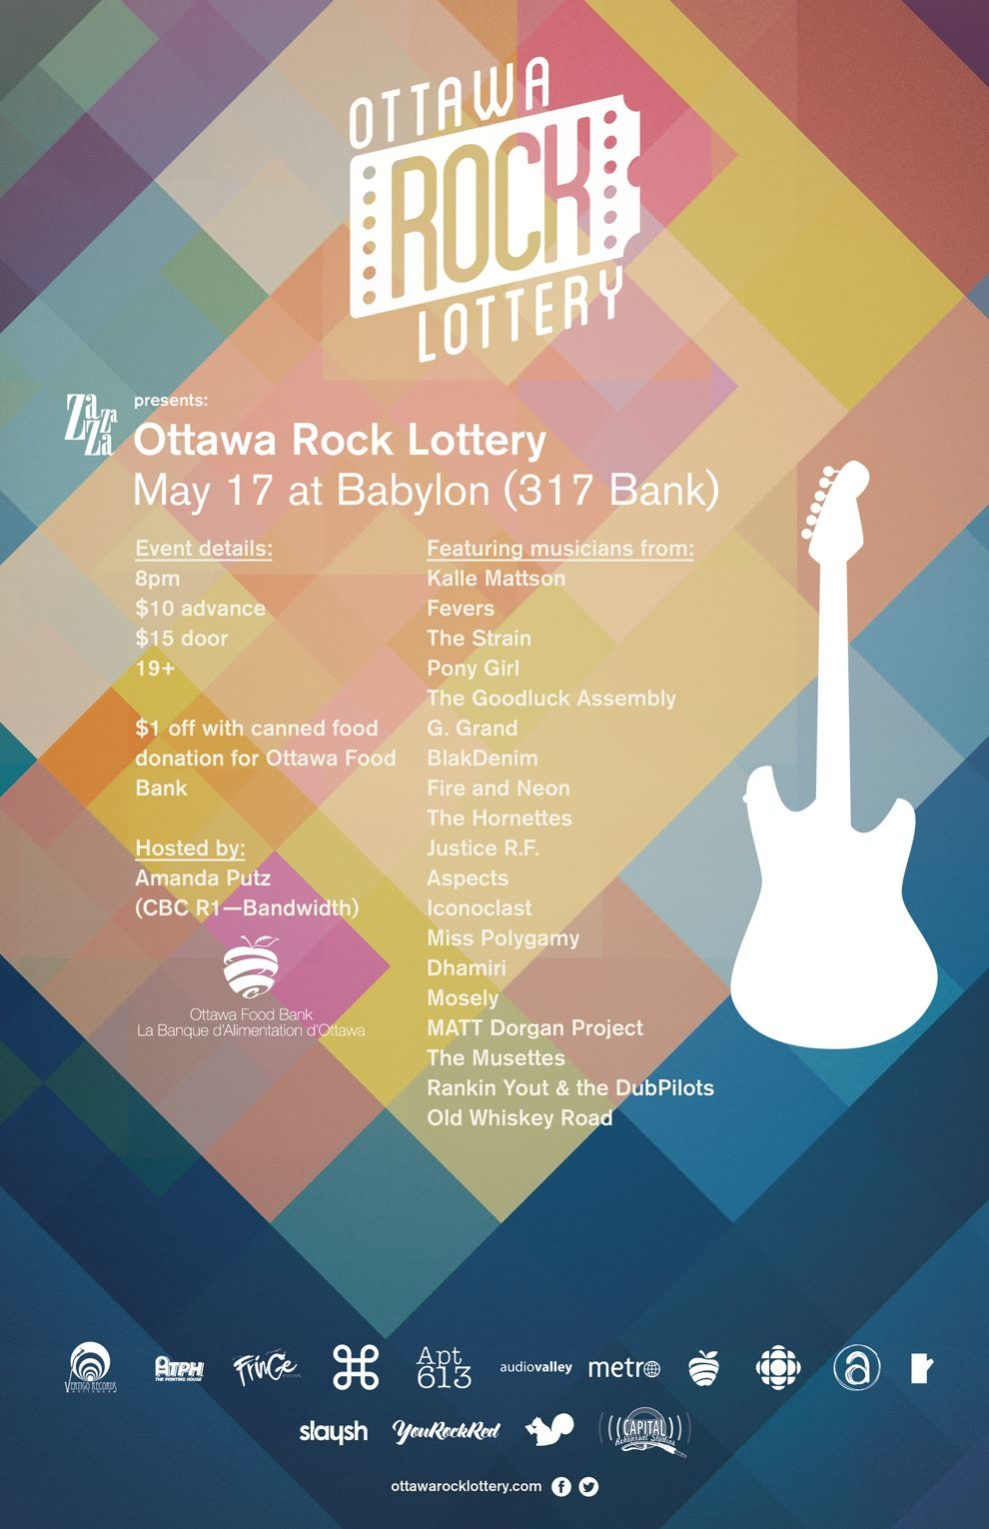 Ottawa rock lottery, yourockred,